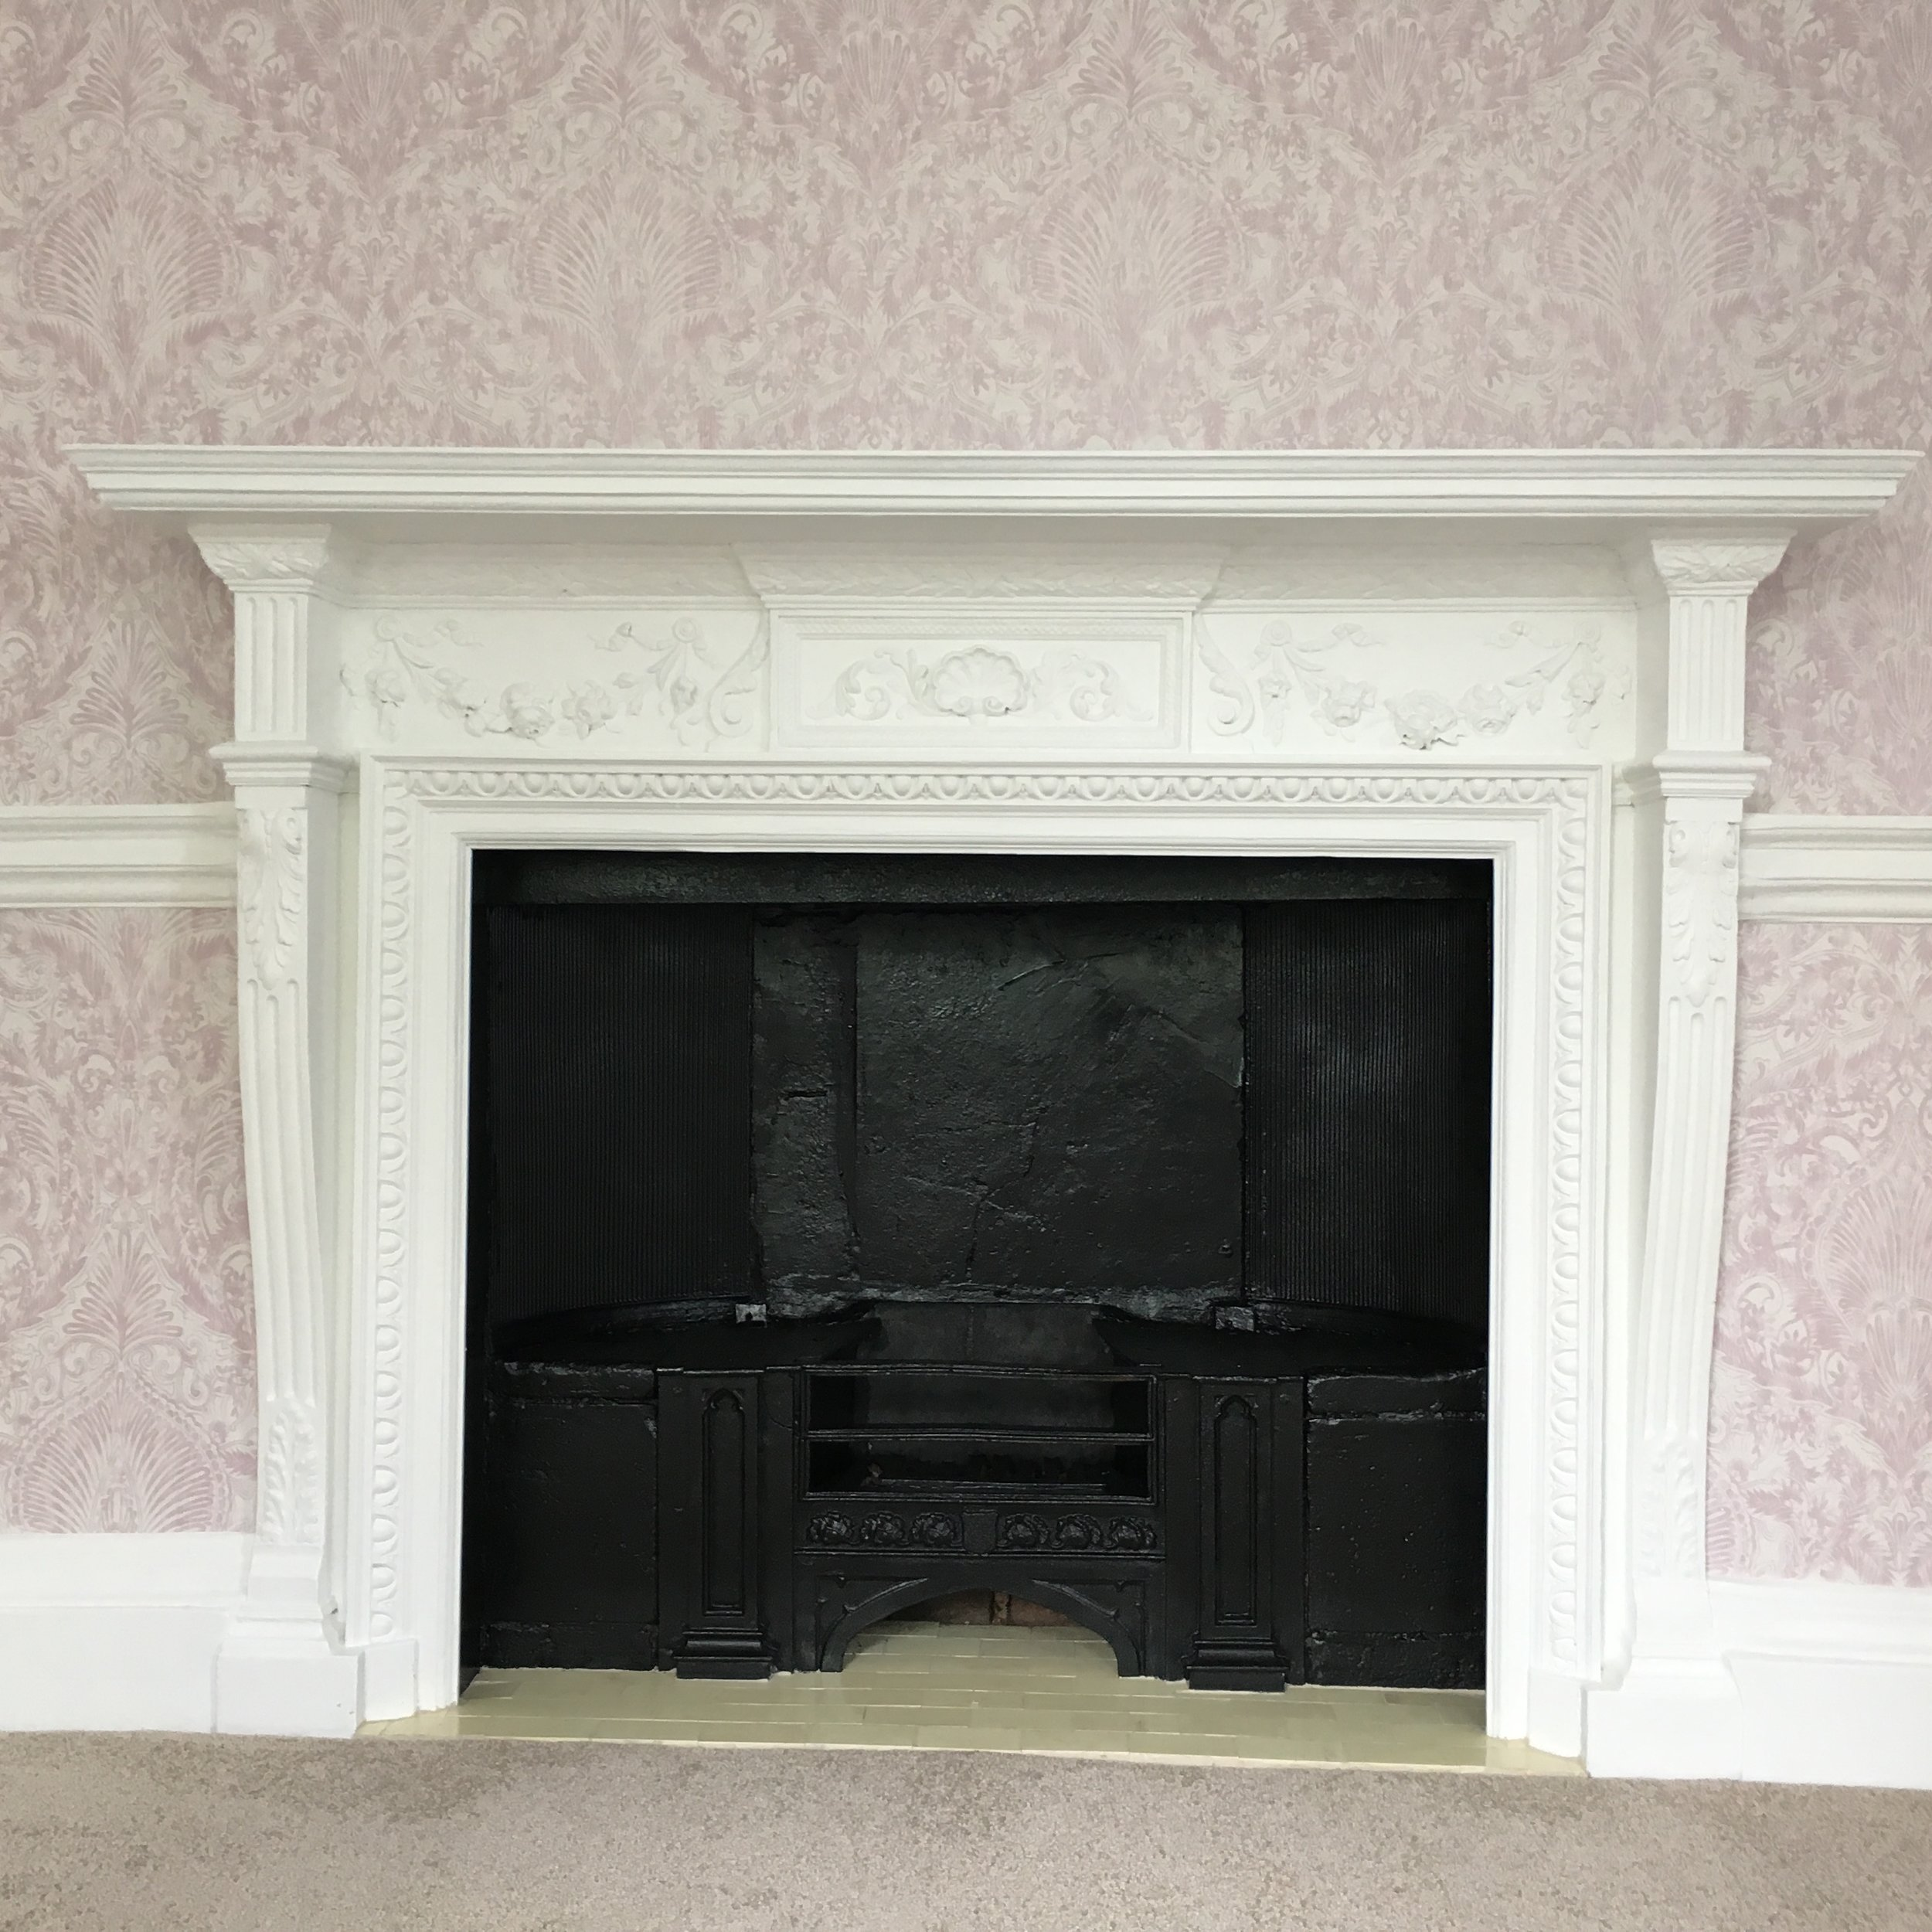 New surround installed and fireplace fully restored